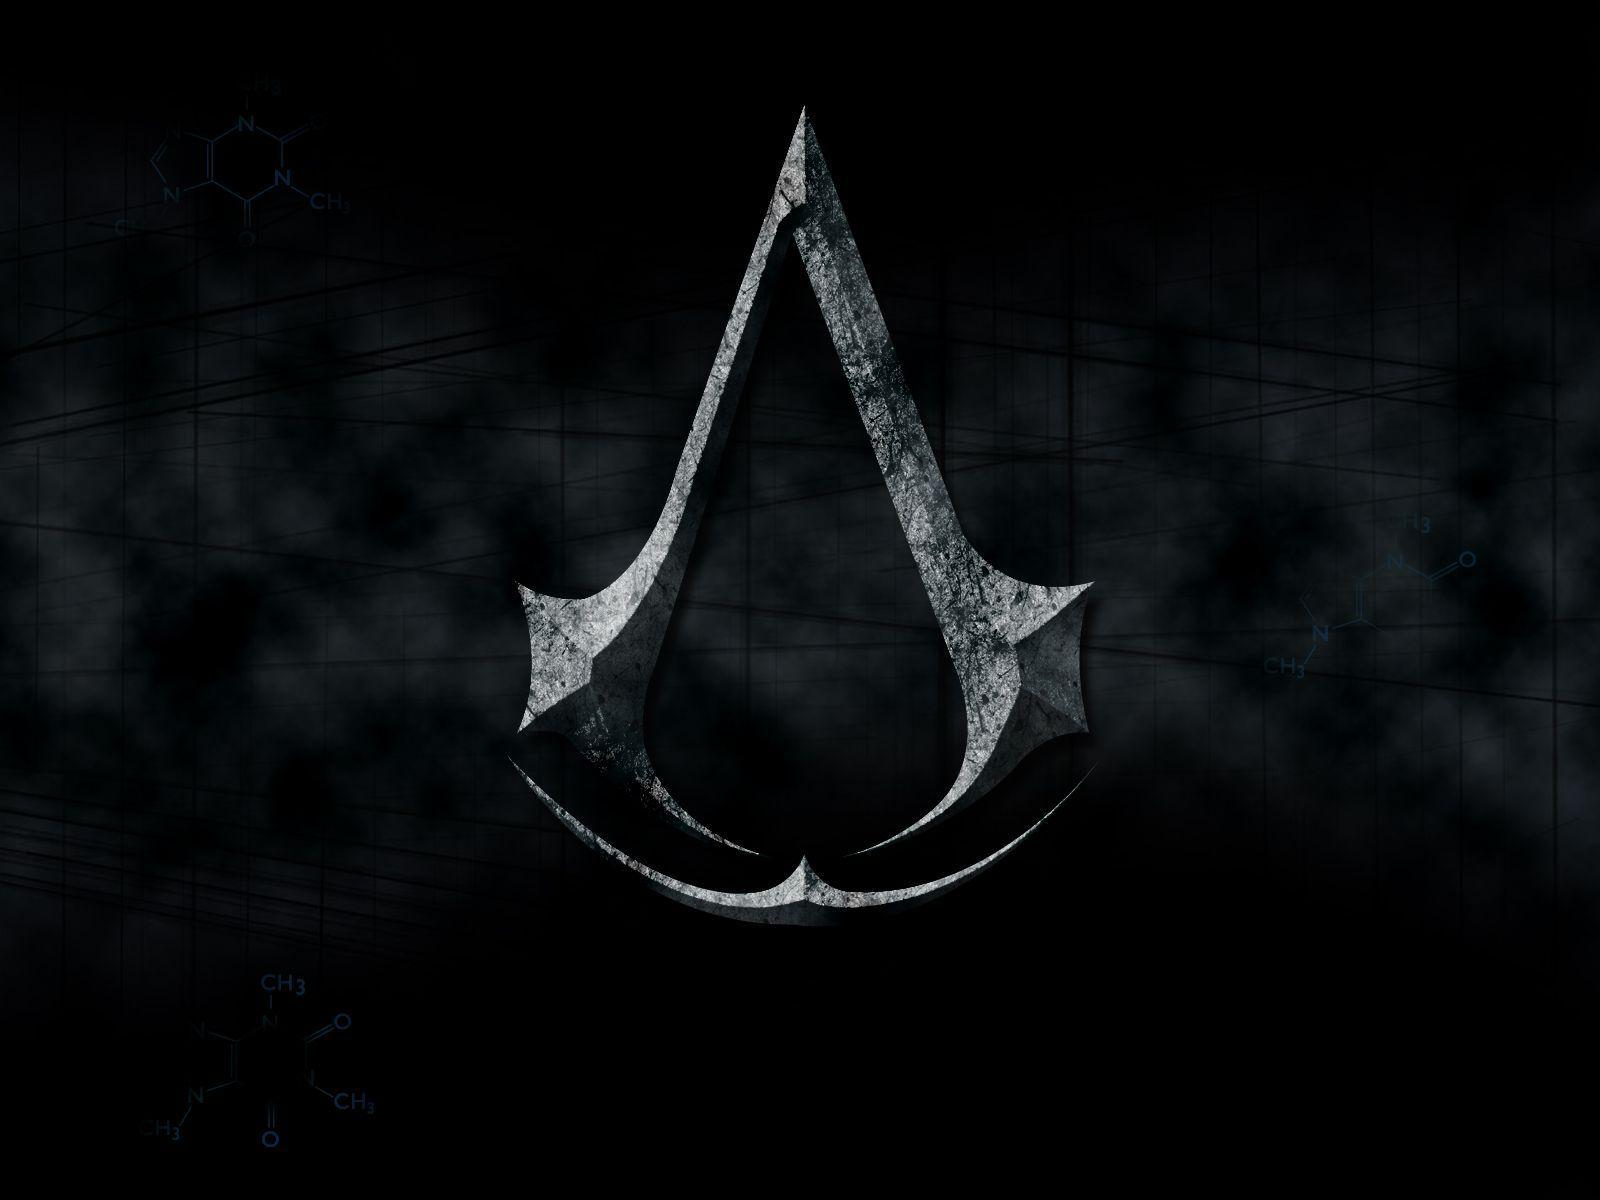 Assassins Creed Wallpapers HD Wallpapers 1920×1080 Assassin Creed